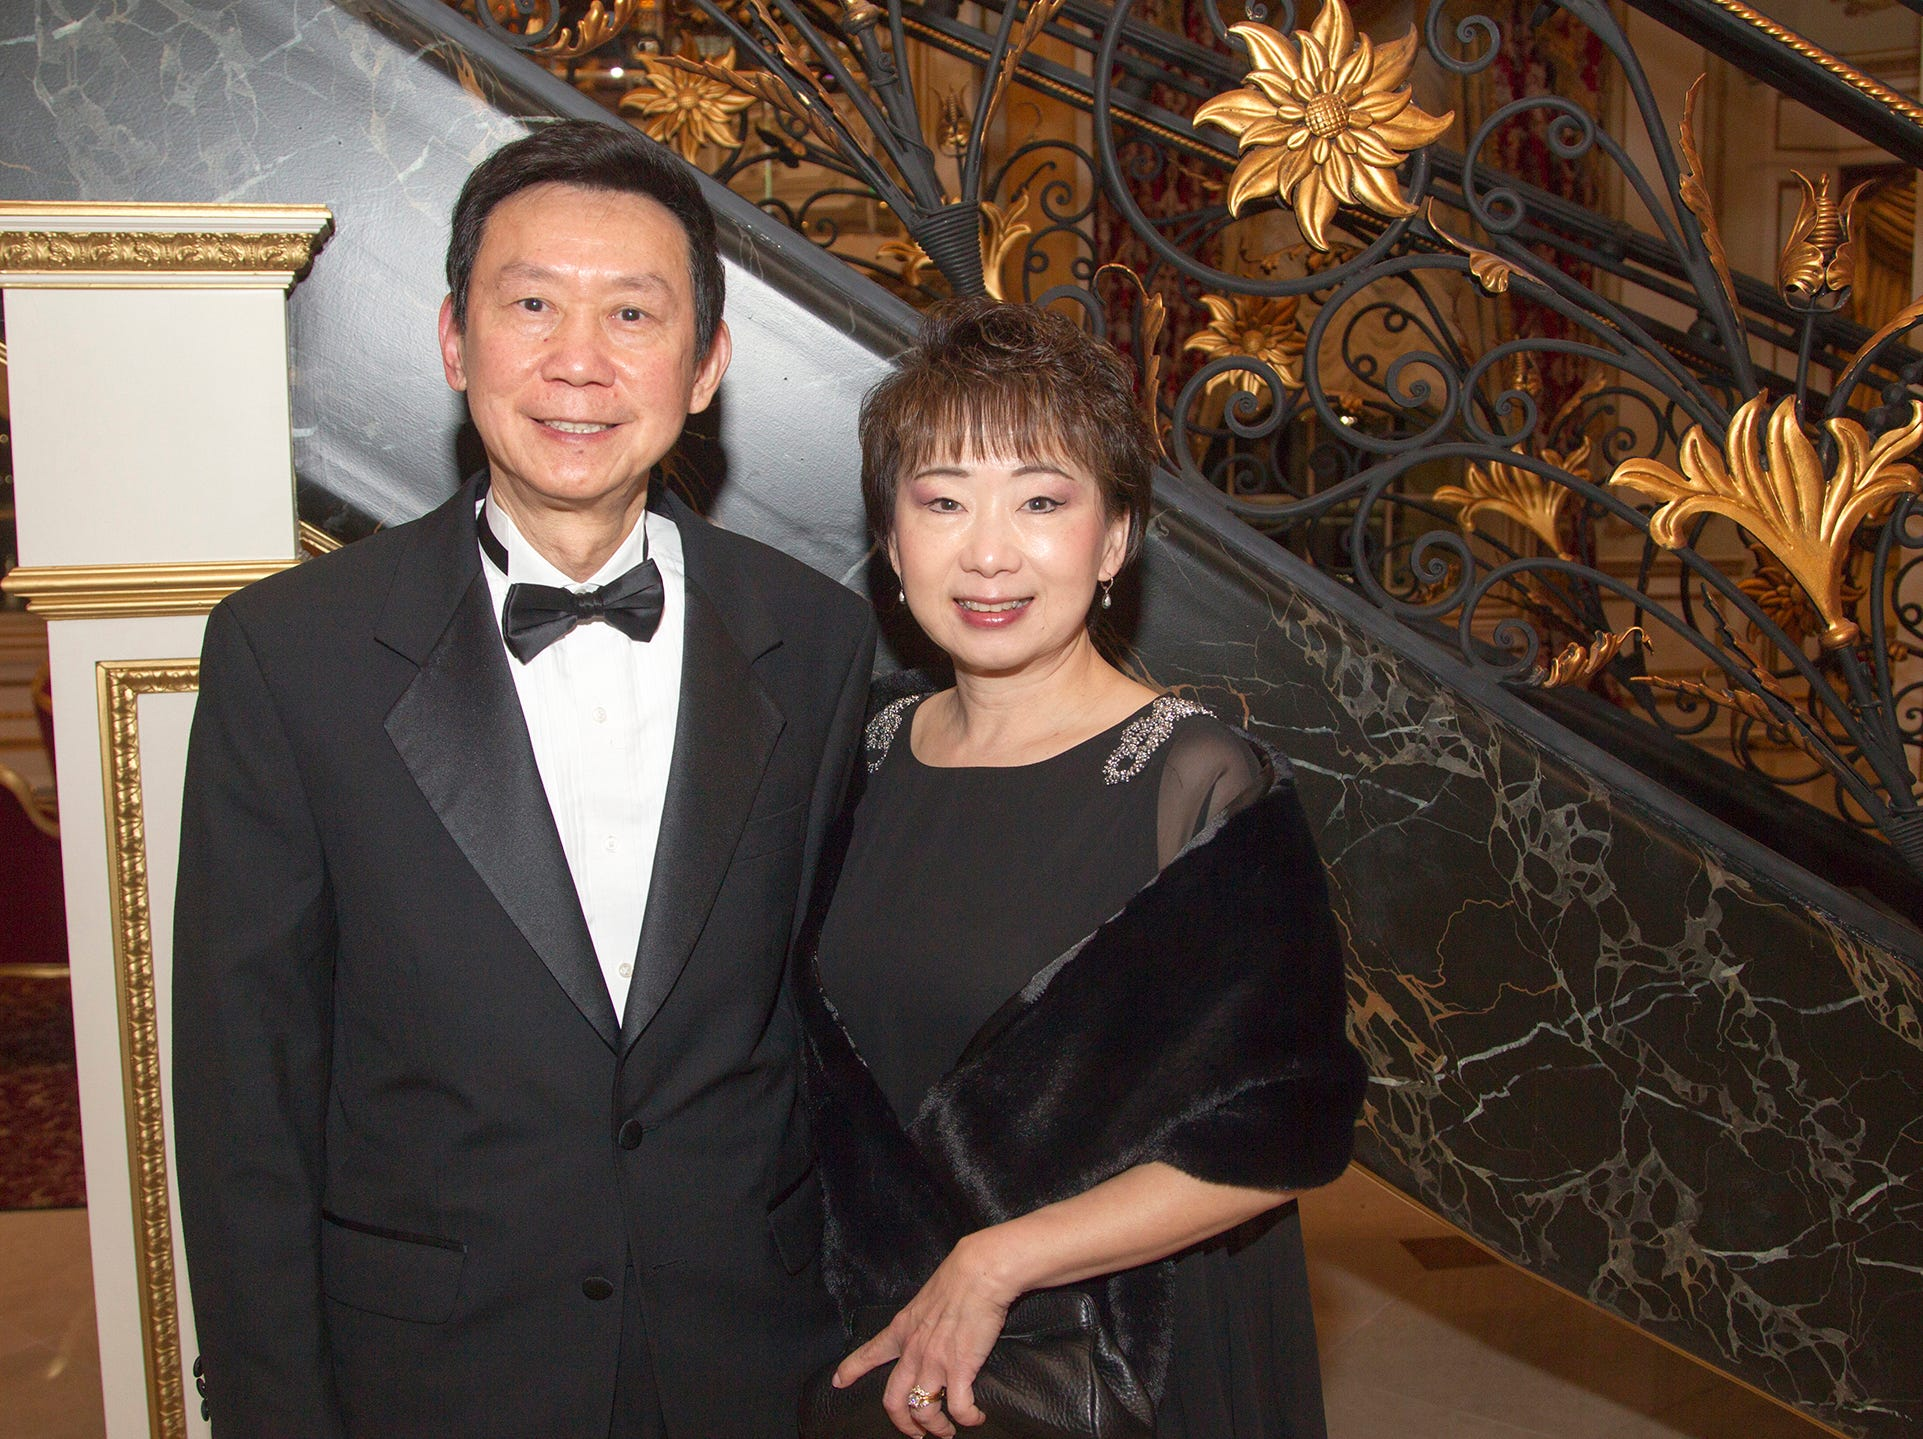 Henry and Cindy Zhou. The 72nd Annual Valley Ball gala at The Legacy Castle in Pompton Plains. 11/16/2018